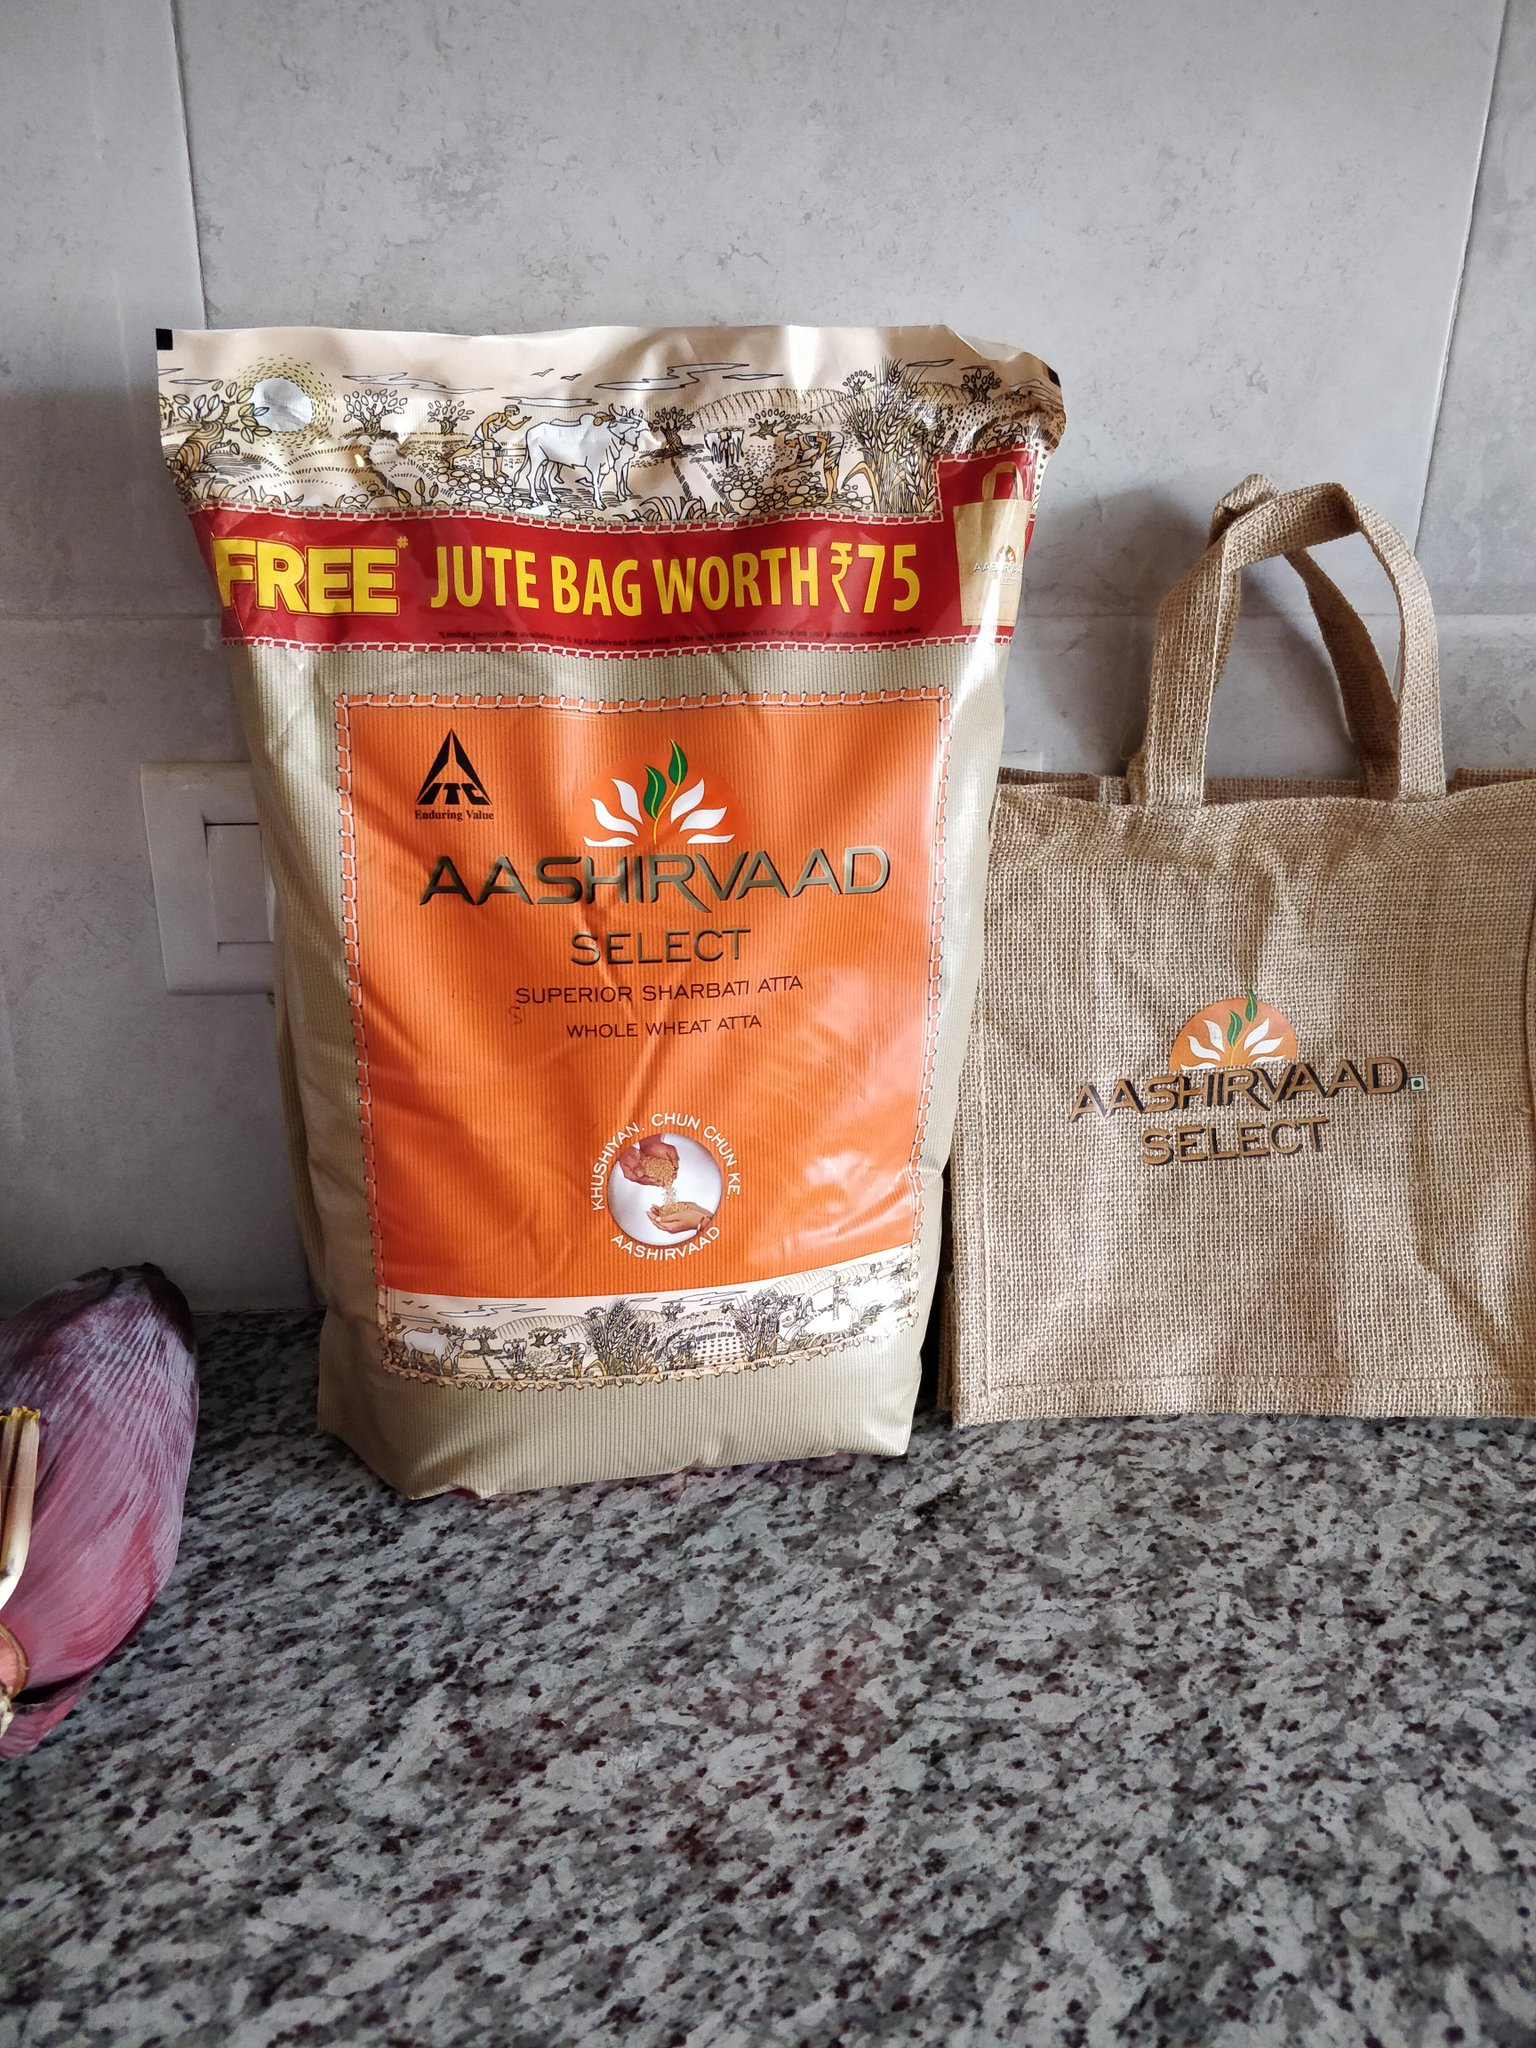 Karthik On Twitter We Didn T Aashirvaad Atta For This Free Jute Bag But Couldn Help Notice How Tiny It Is Not Even The Size Of Pack Too